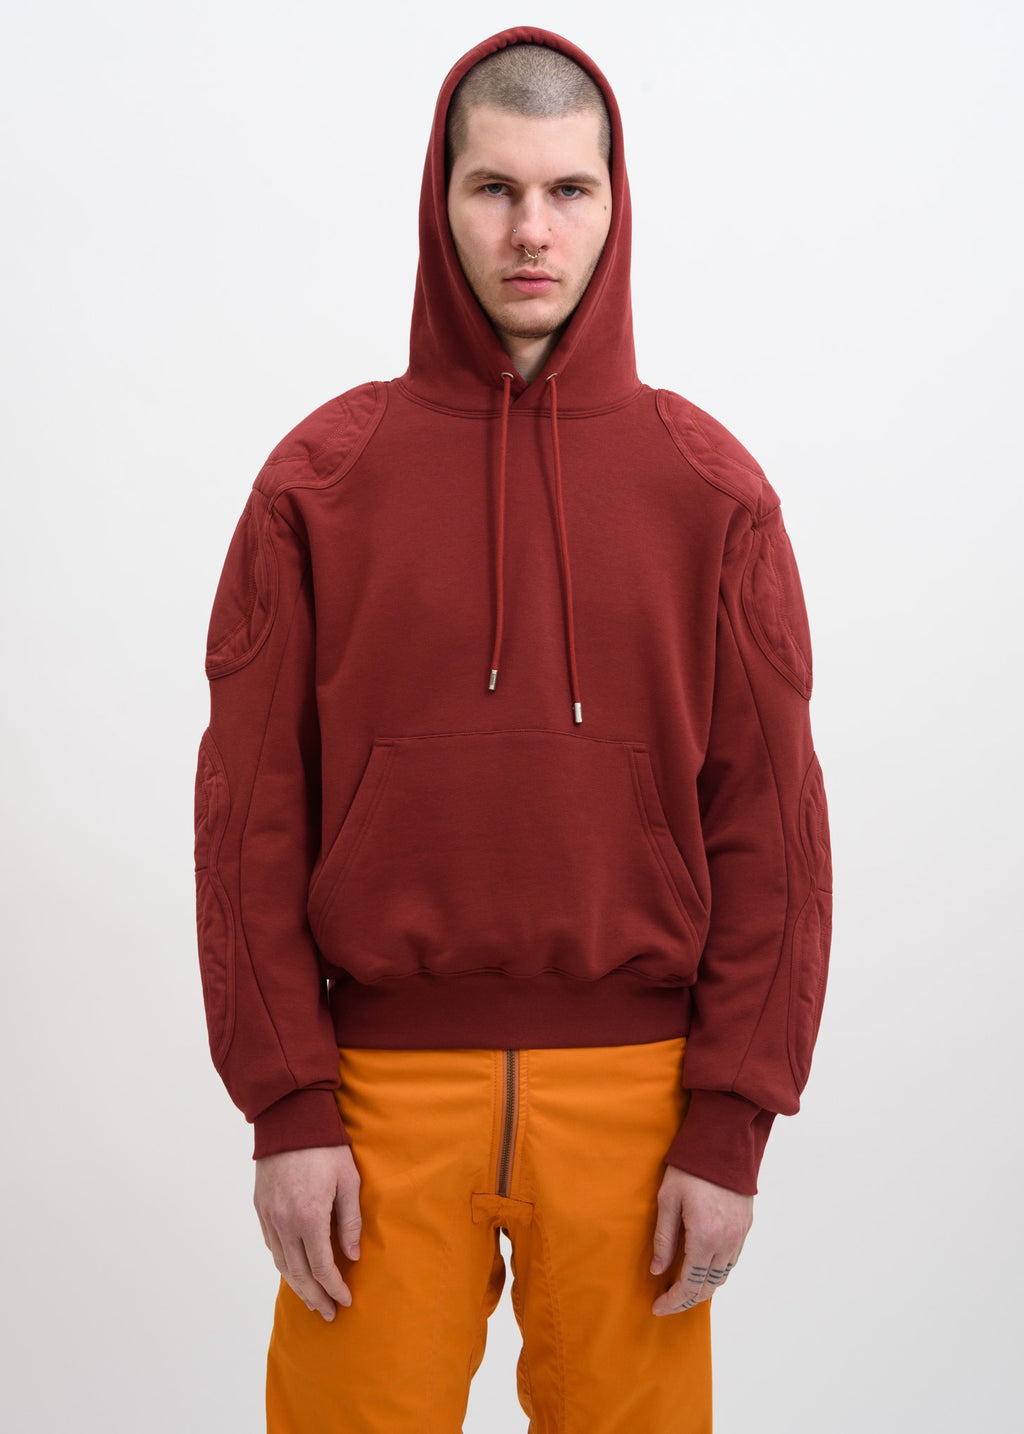 Red Renwhar Hoodie w/ Patches